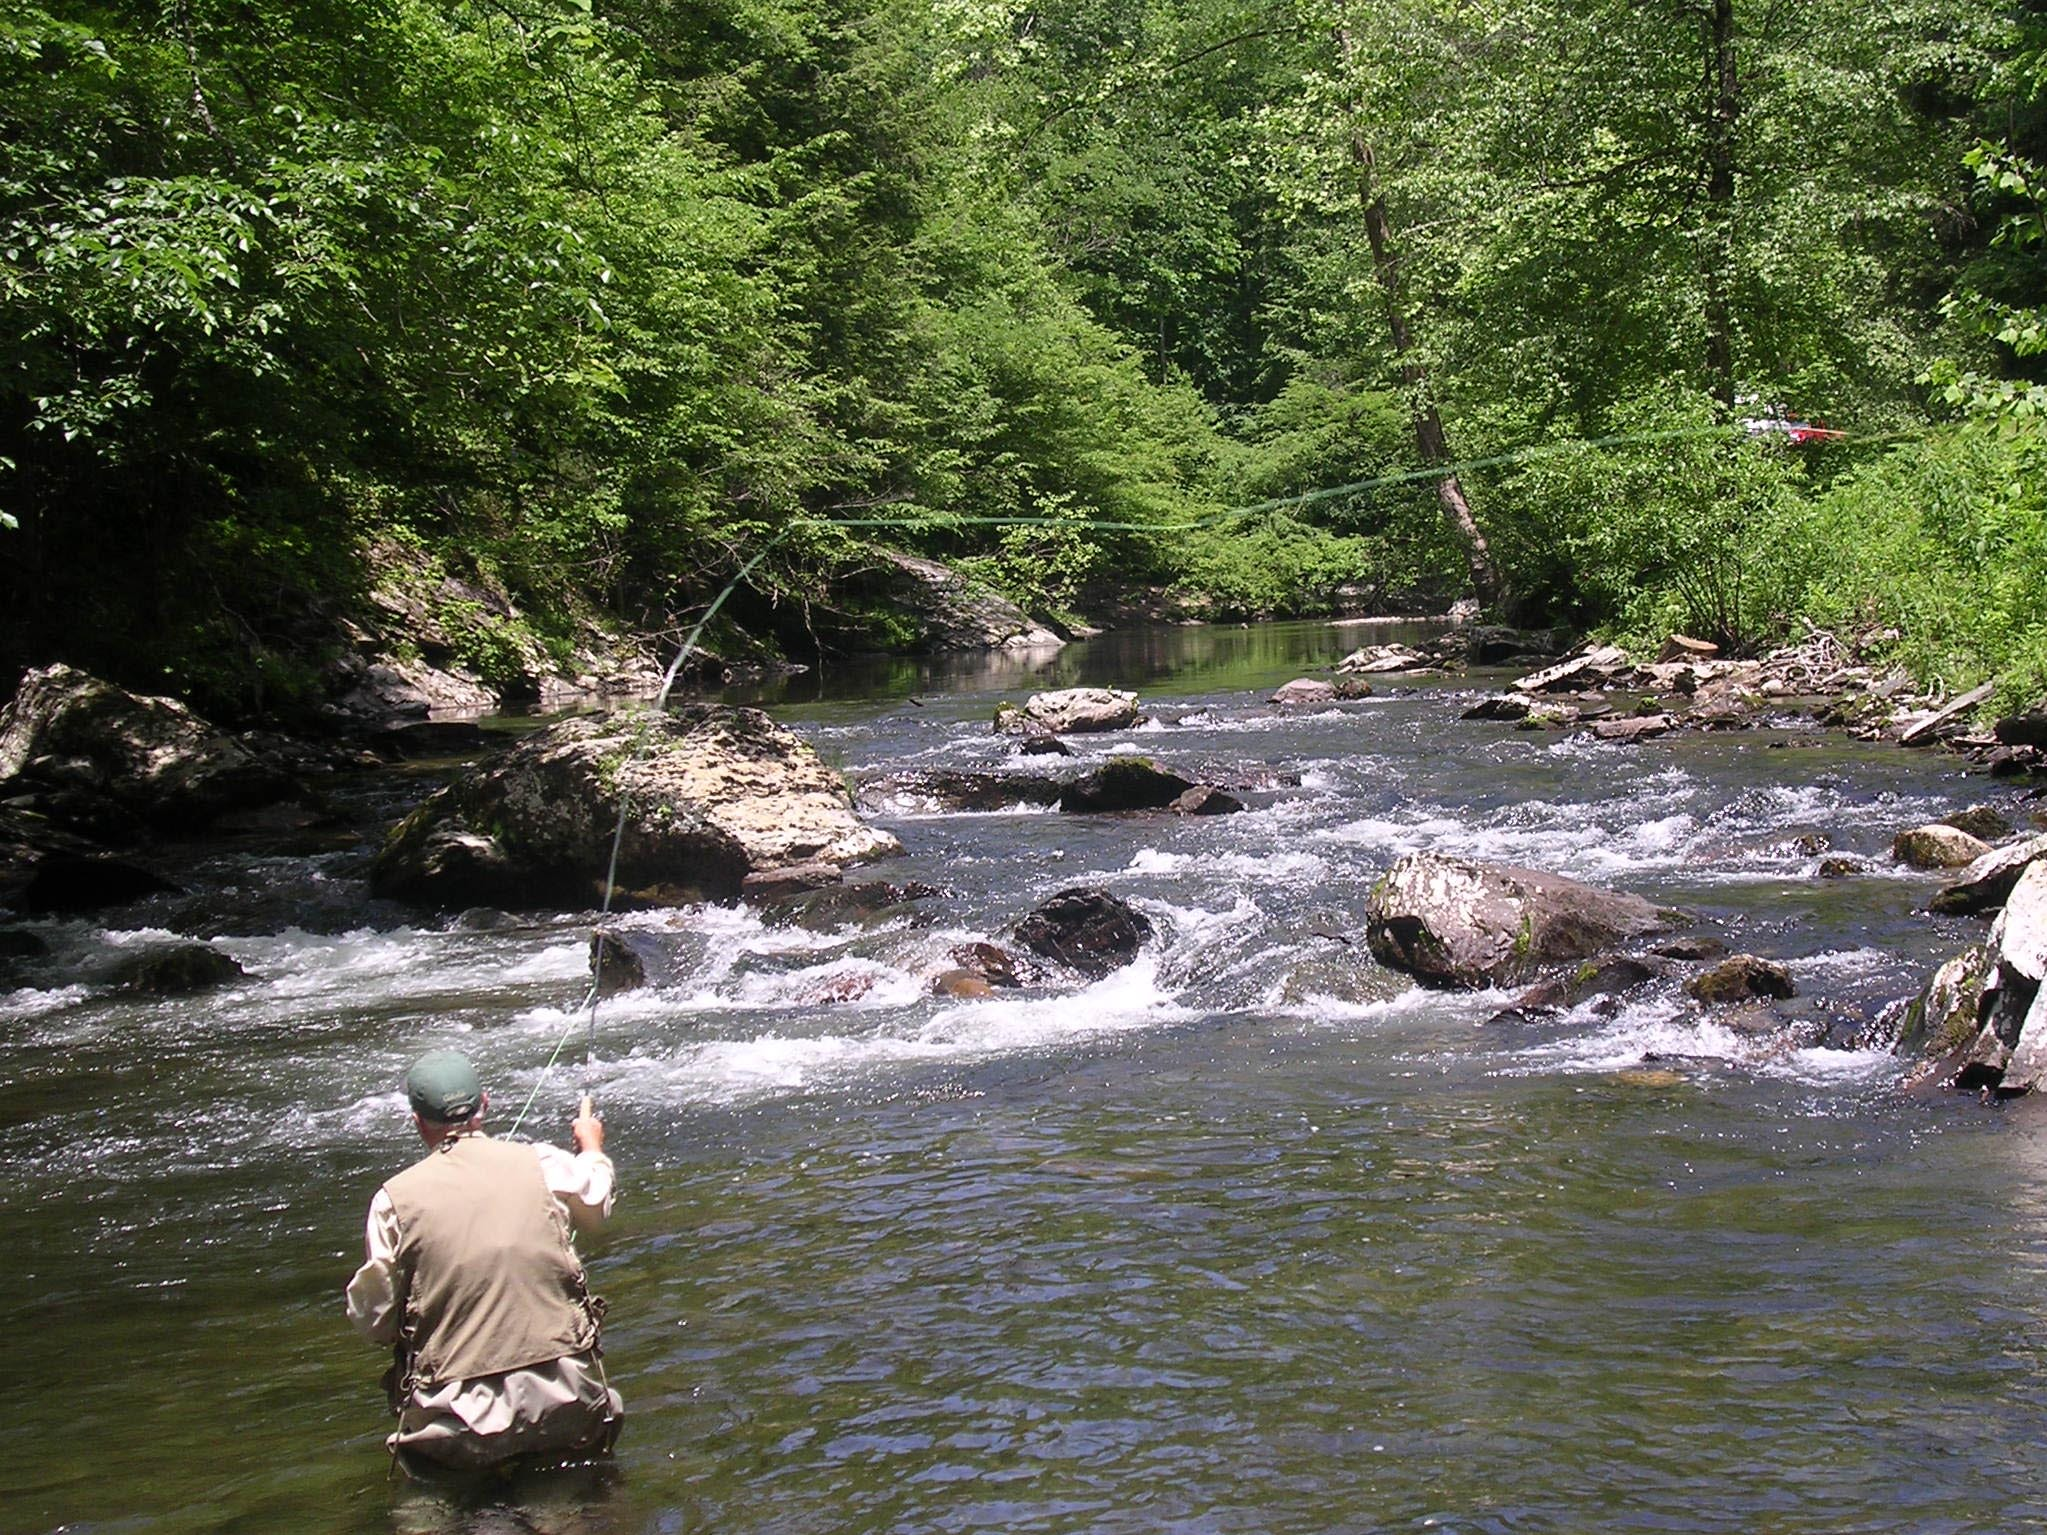 """Carl Penird of Marion, Ind., enjoys a day of trout fishing on the Little River inside the Great Smokey Mountains National Park. The Little River will be the beneficiary of a fund-raising event called Troutfest Saturd and Sunday, June 5-6, at the Townsend Visitors Center. Penird is retired from the electronics industry and stopped off for a little fishing en route to a wedding in Virginia. On this day Penird caught about a half-dozen trout. Two of those he called """"keepers,"""" but he released them anyway."""